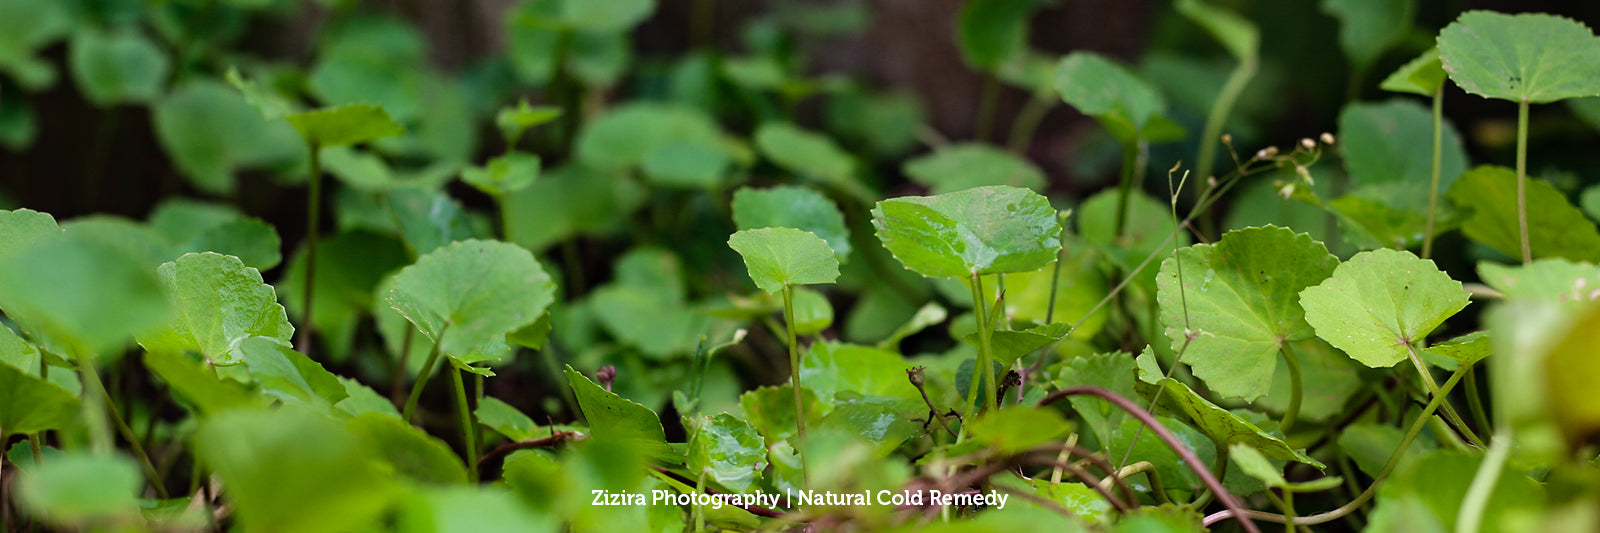 Gotu Kola Other Names of This Natural Anxiety Reliever